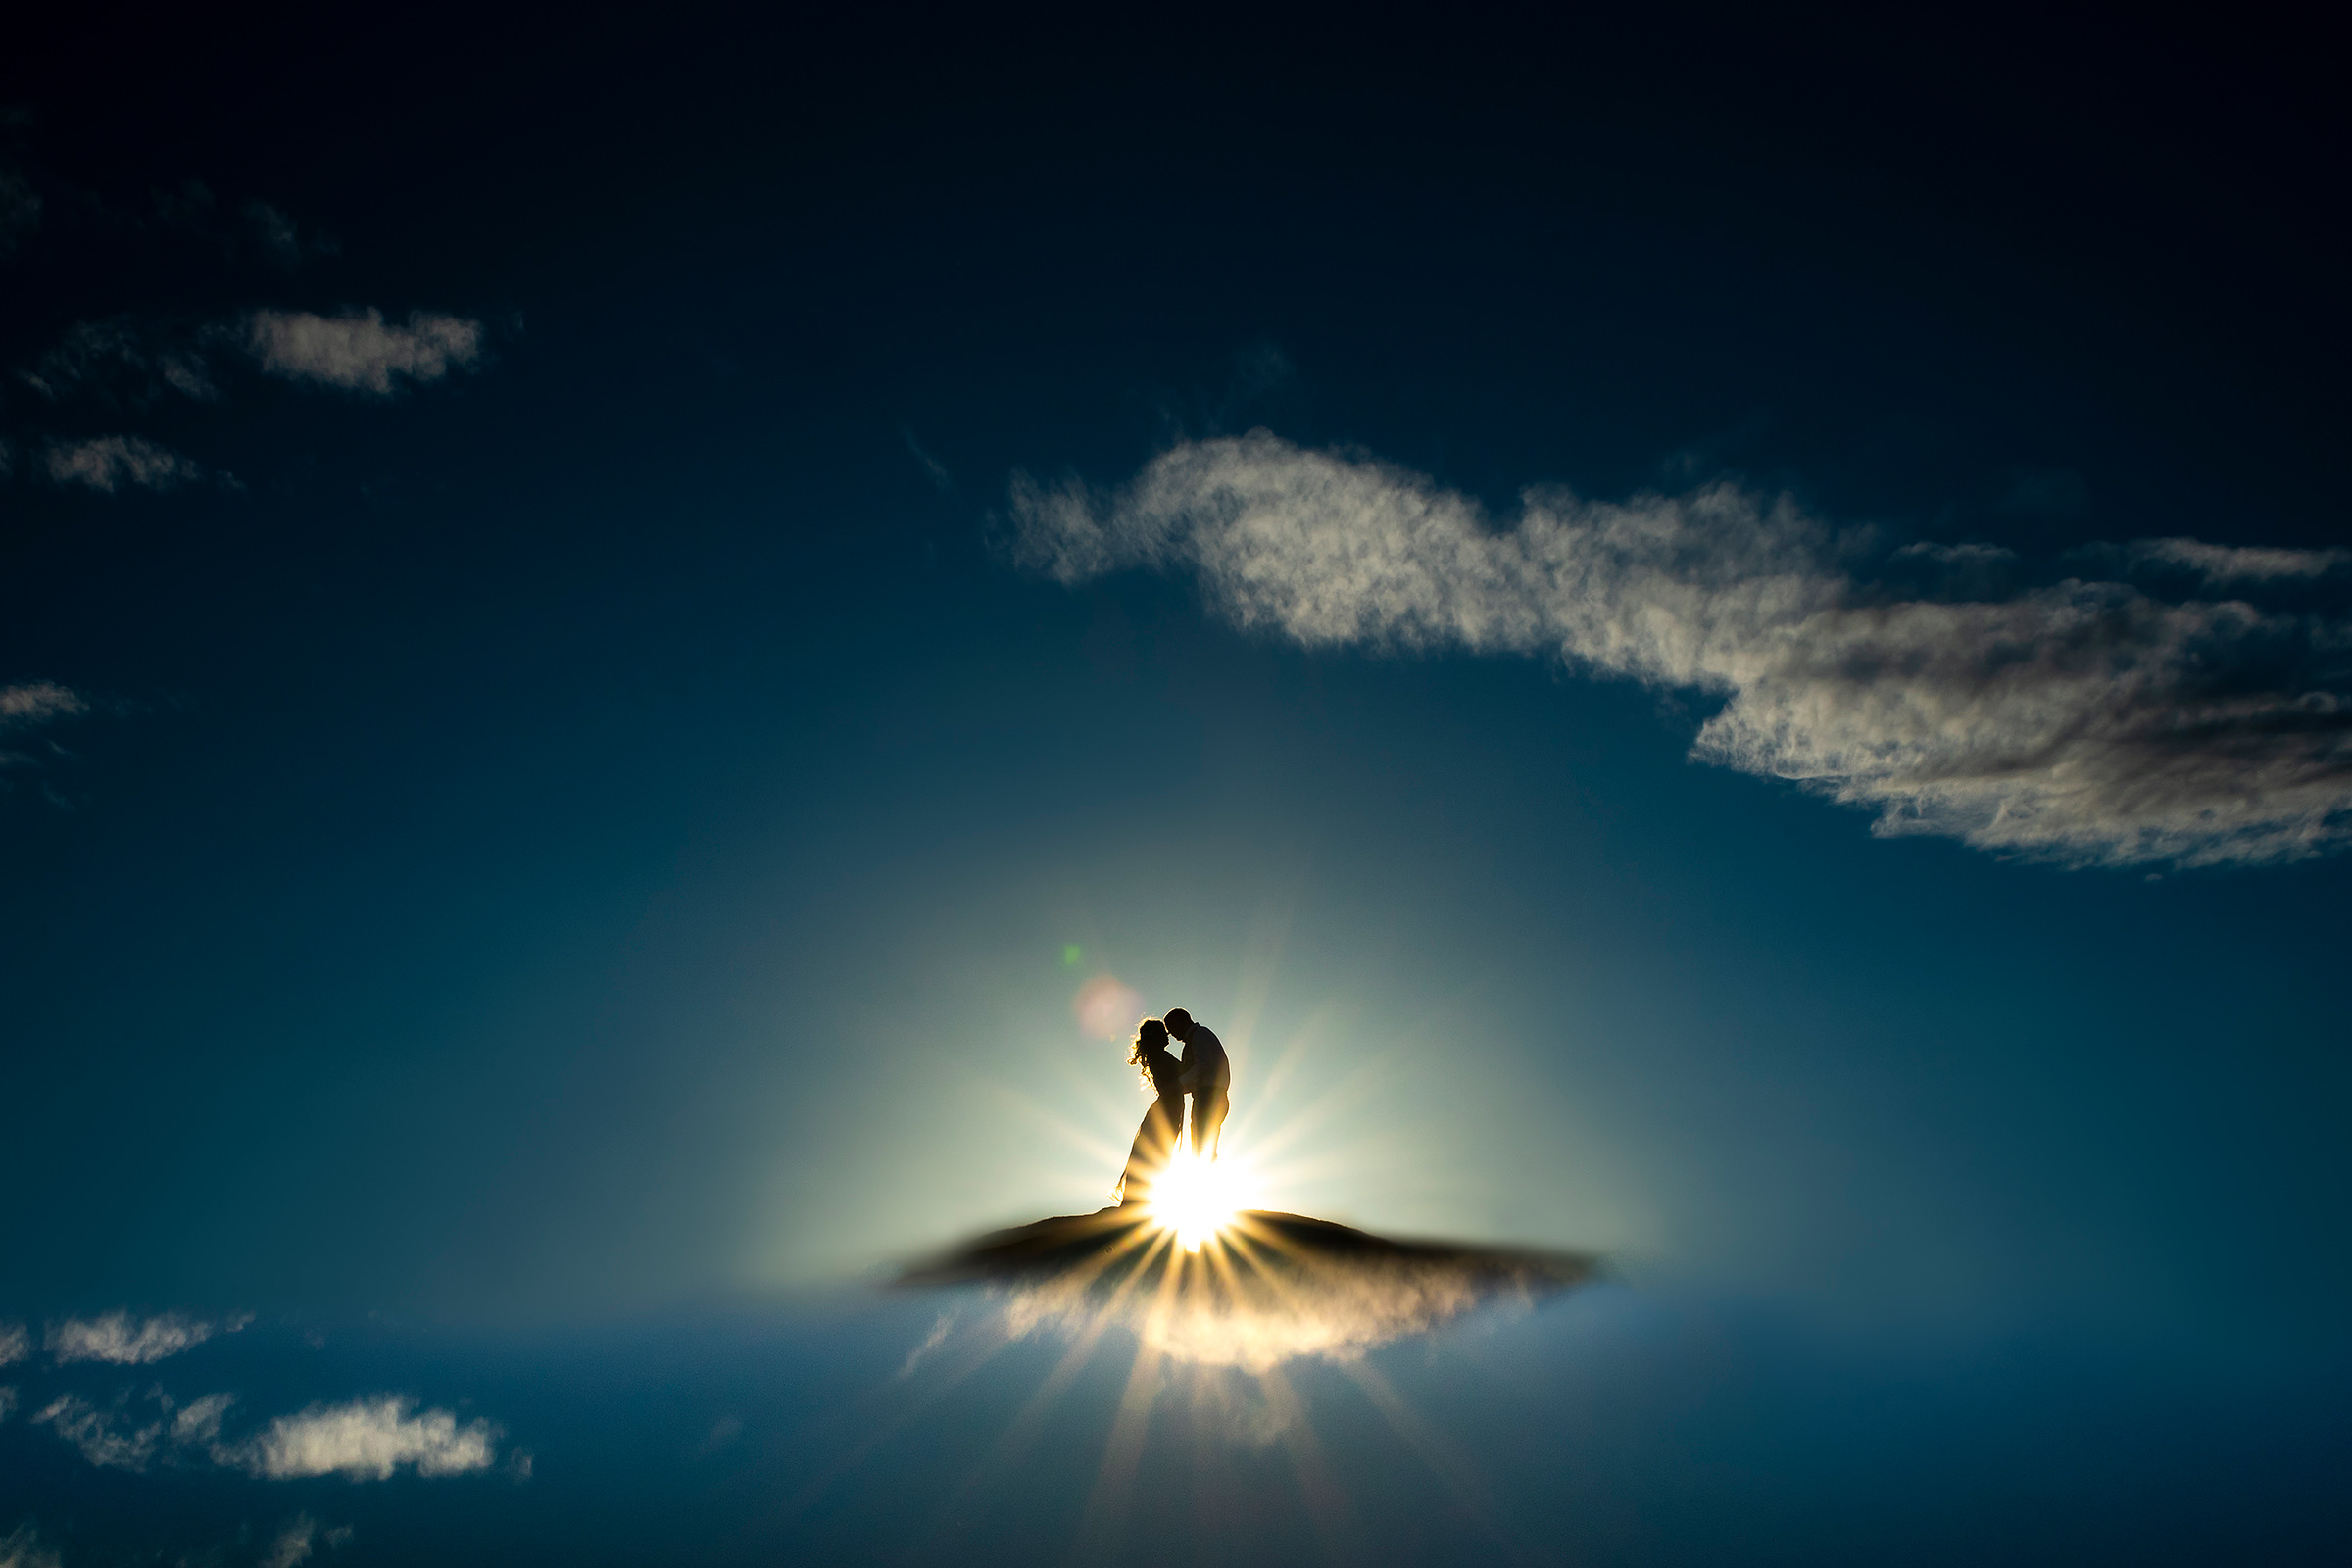 Silhouette of couple in the clouds - photo by J. La Plante Photo